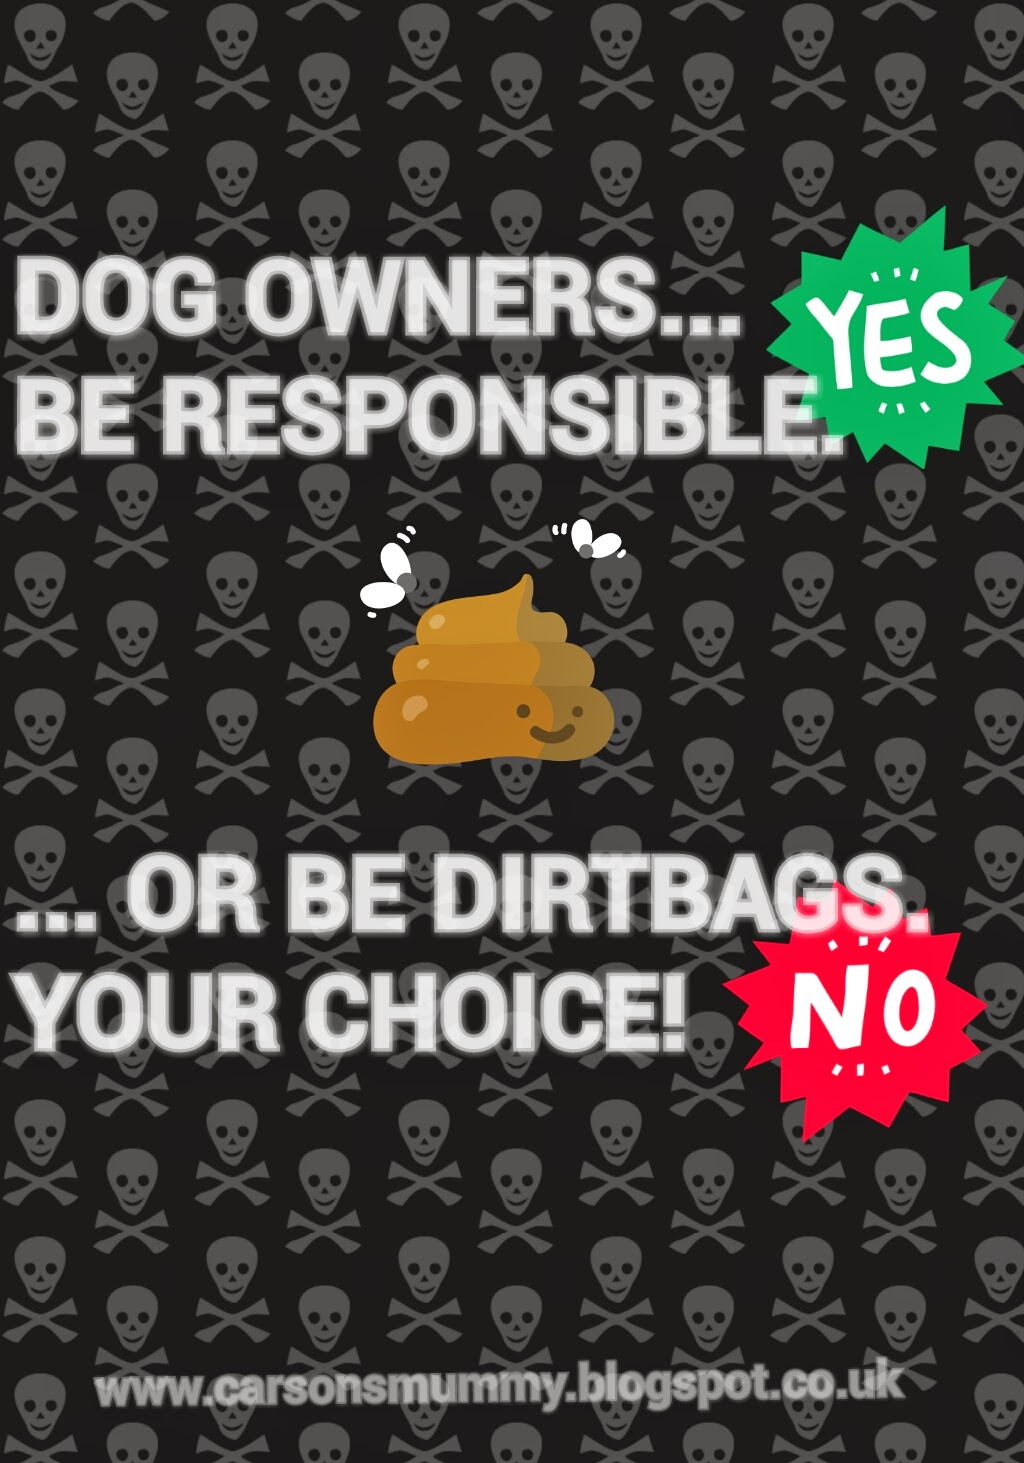 dog shit, dog fouling sign, dog owners be responsible